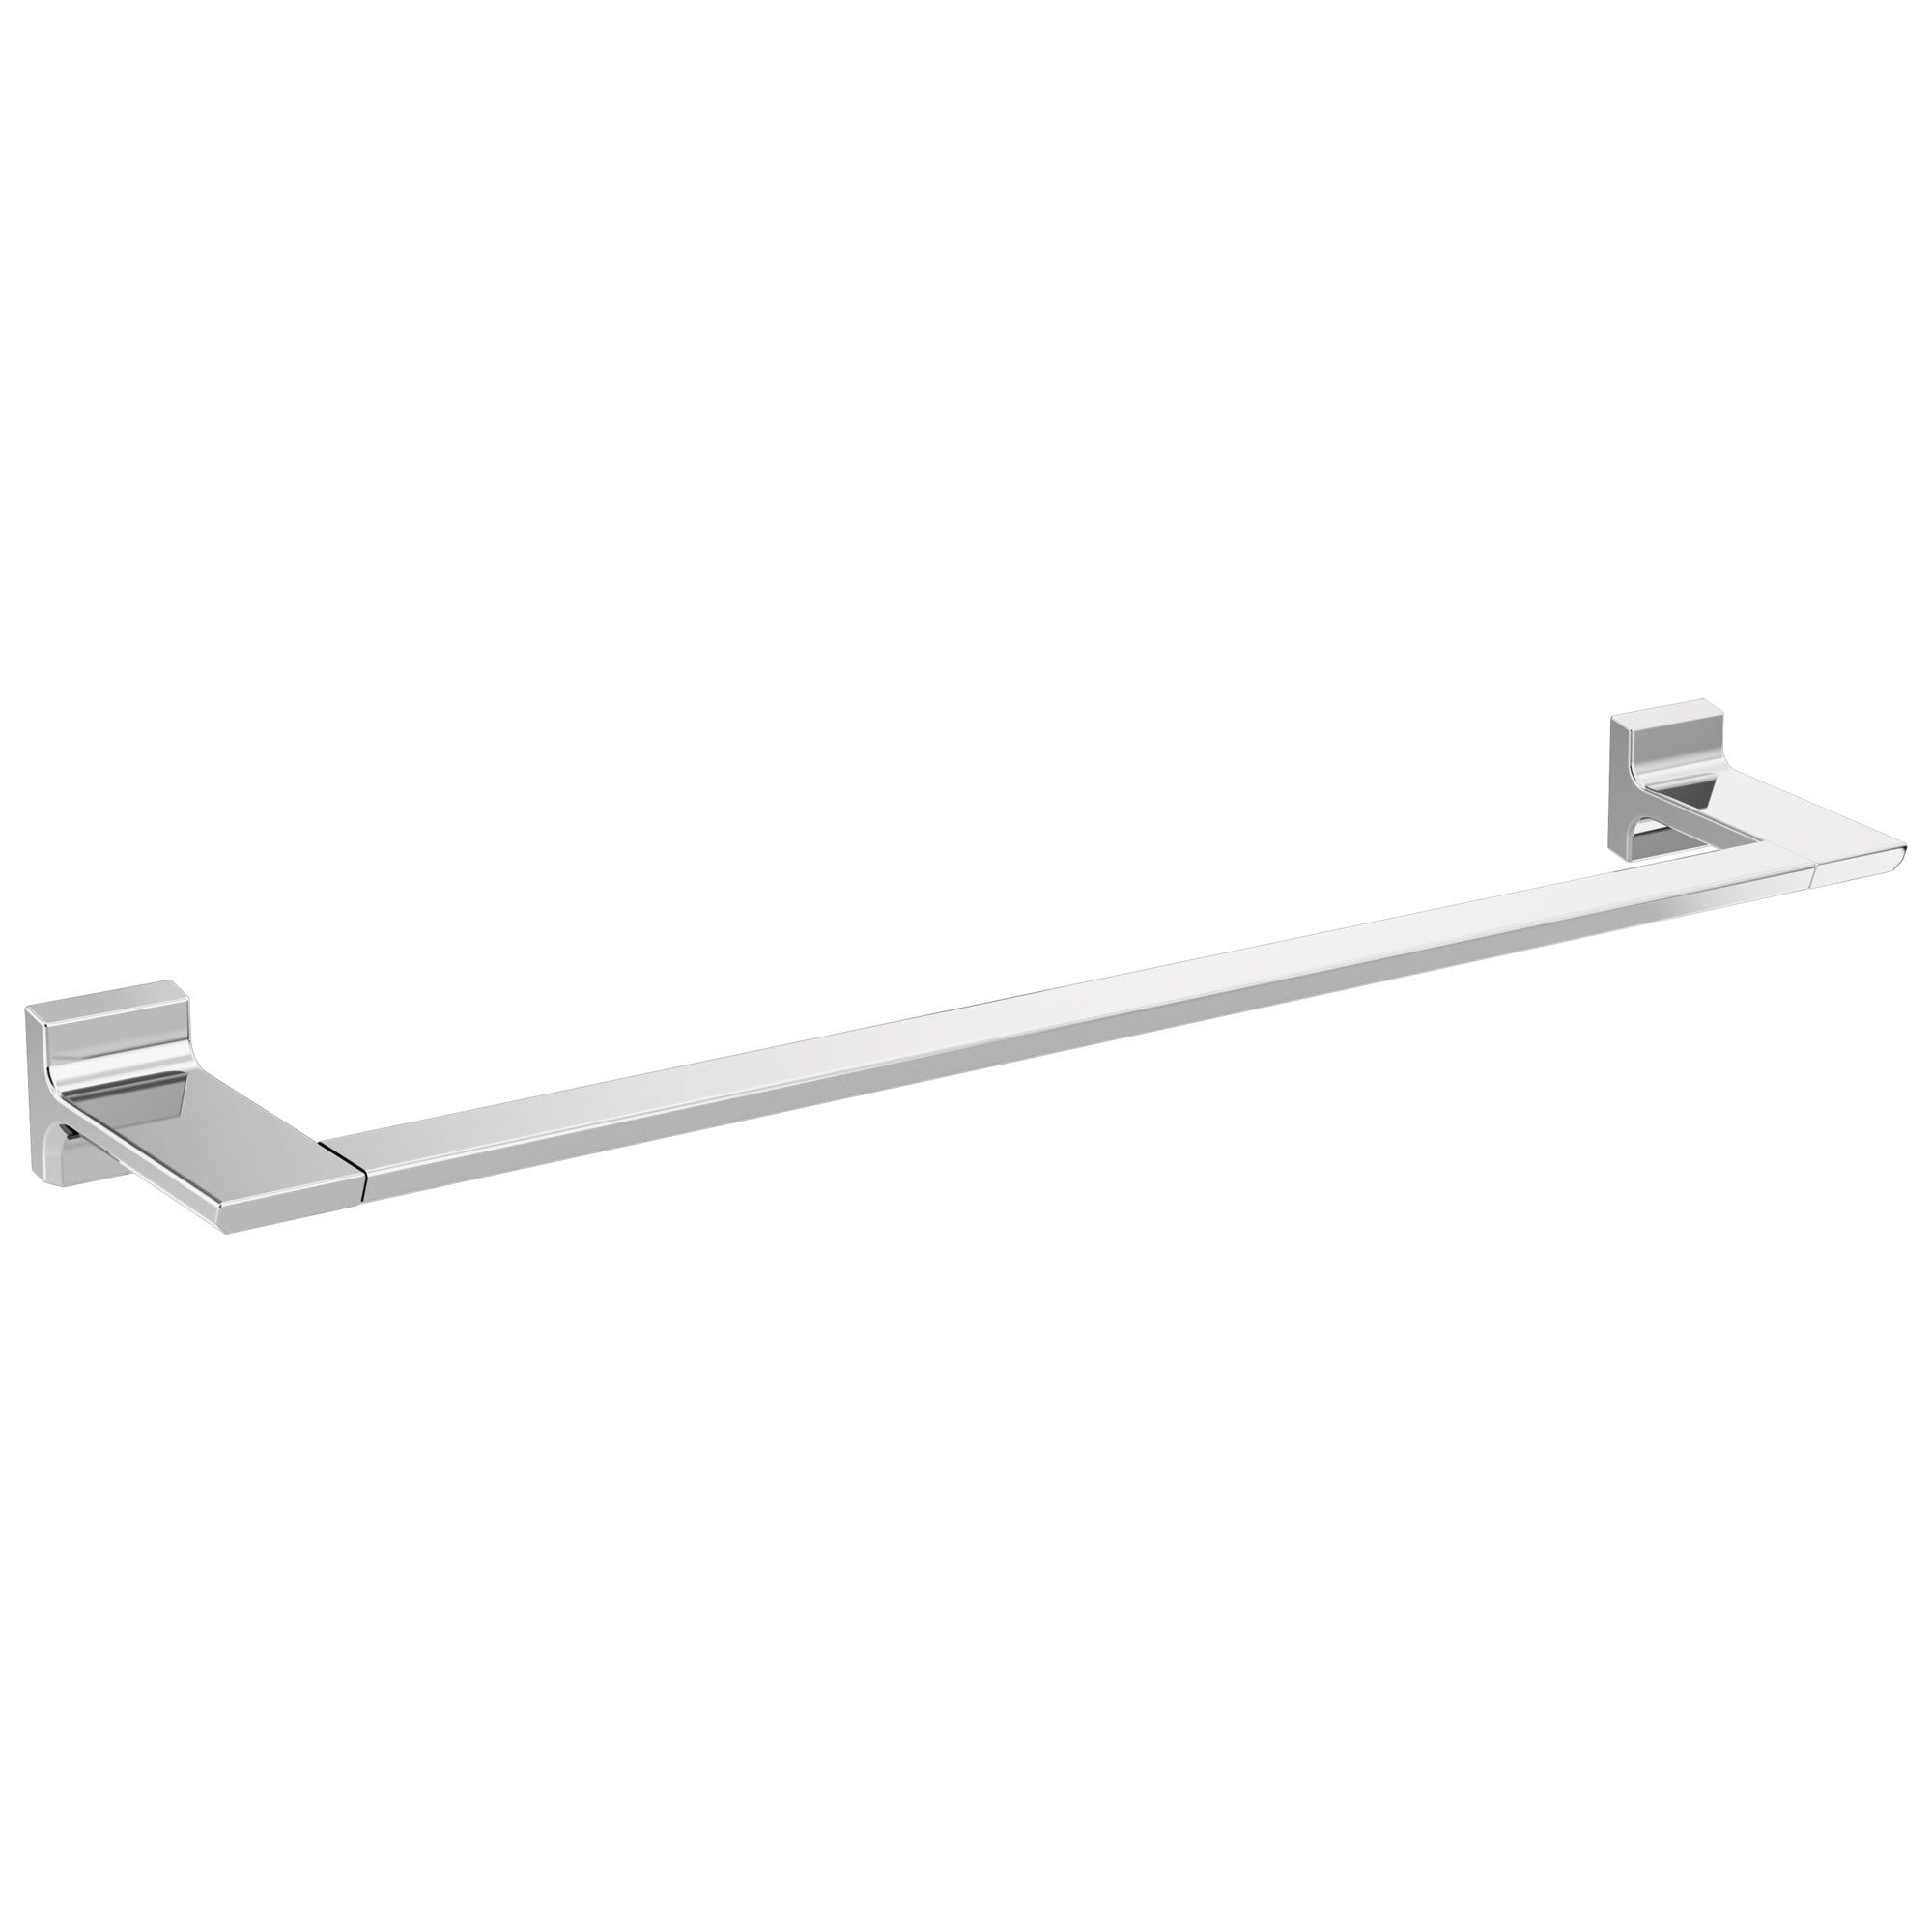 "Delta Pivotal Chrome Finish 24"" Single Towel Bar D79924"